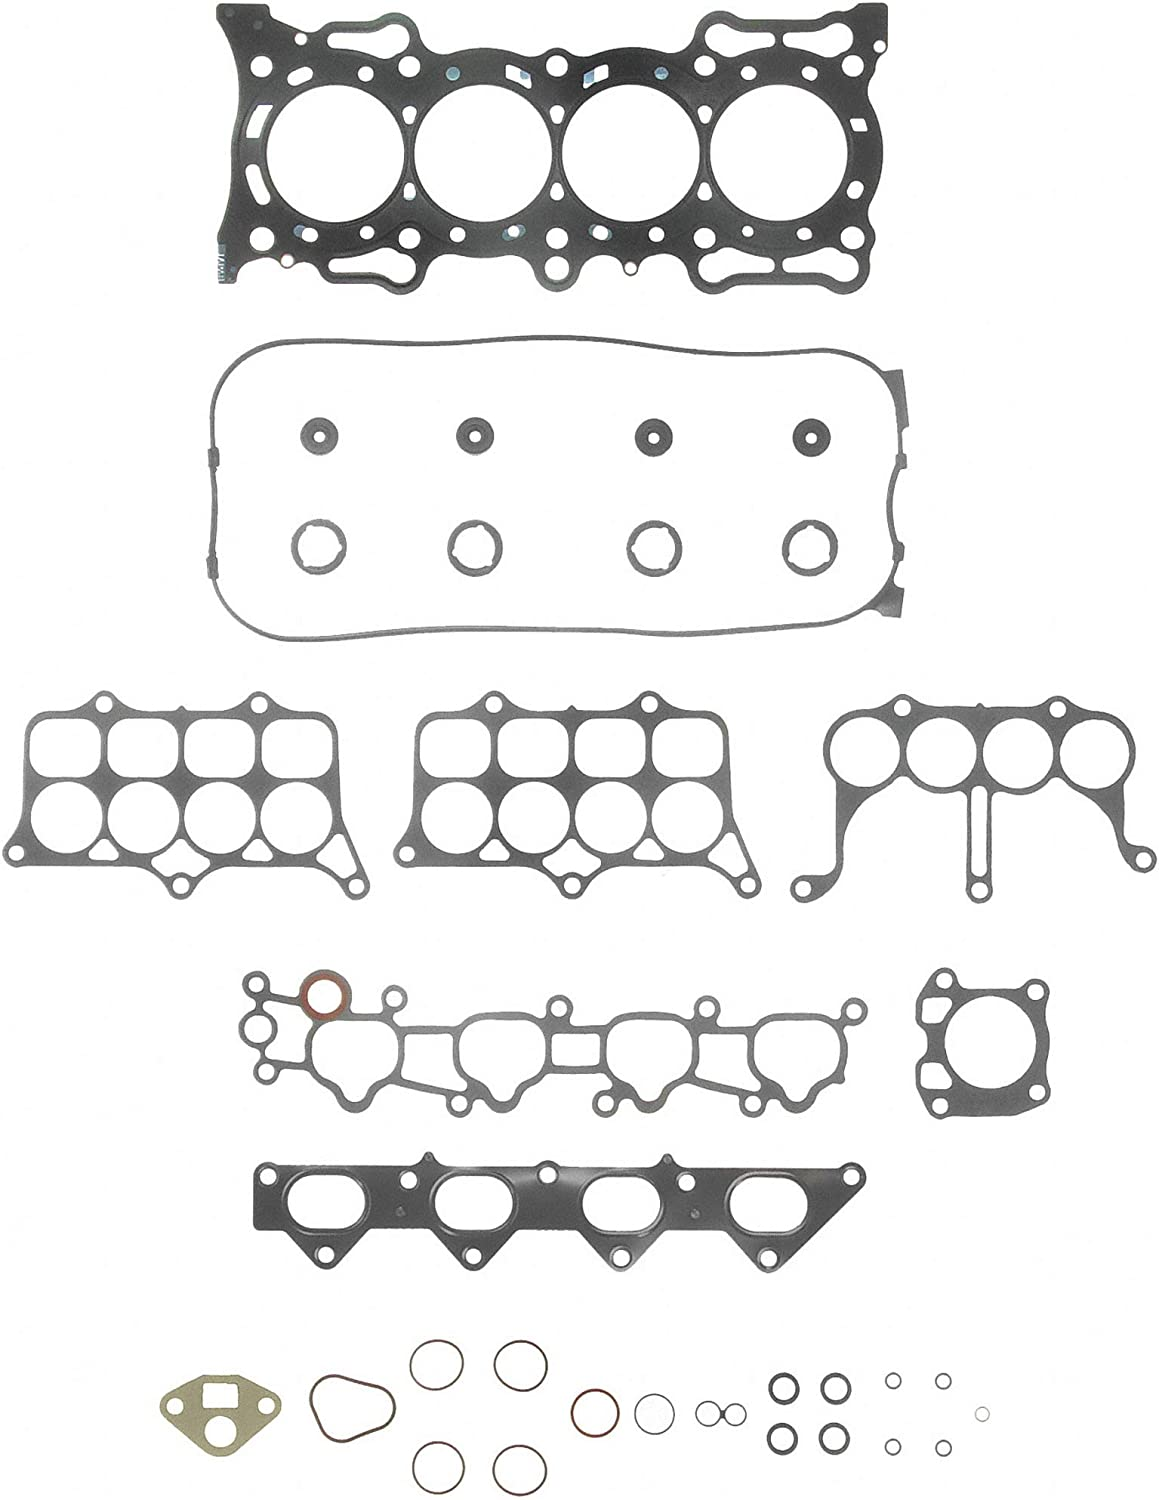 Fel-Pro HIS 9851 PT Cylinder Head Installation Set